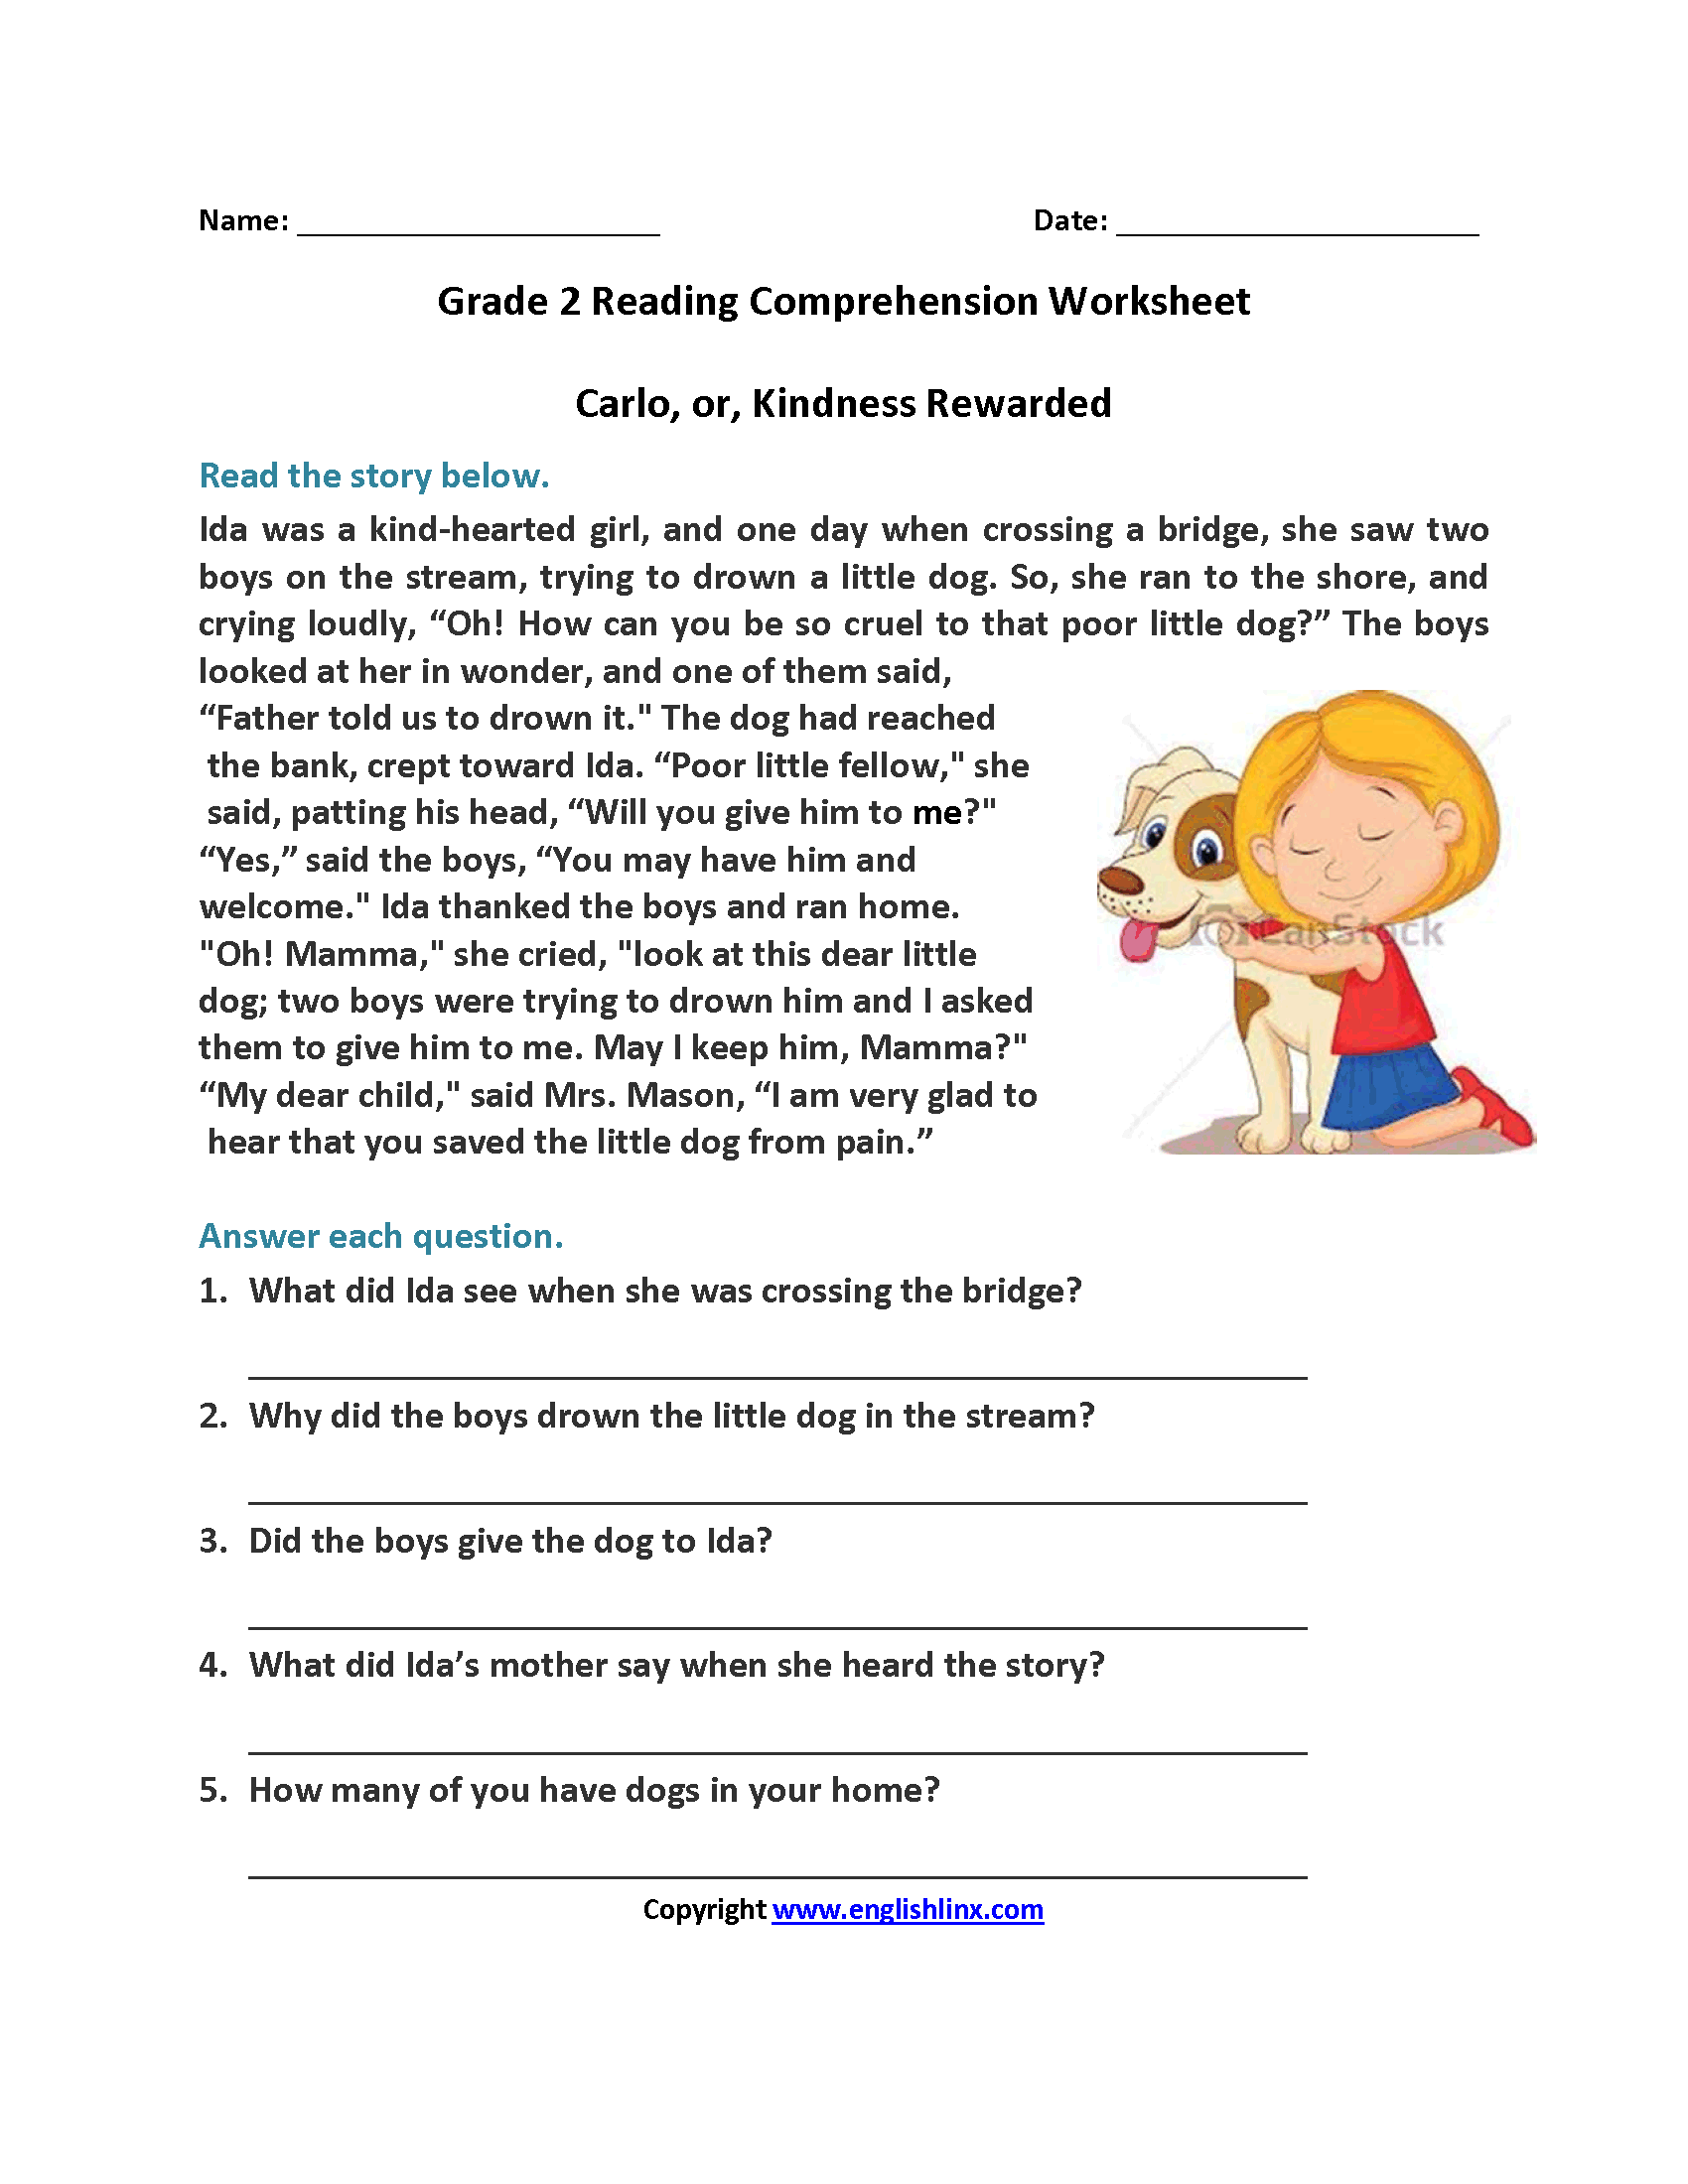 image about Printable 2nd Grade Reading Worksheets named Carlo or Kindness Rewarded Minute Quality Looking through Worksheets